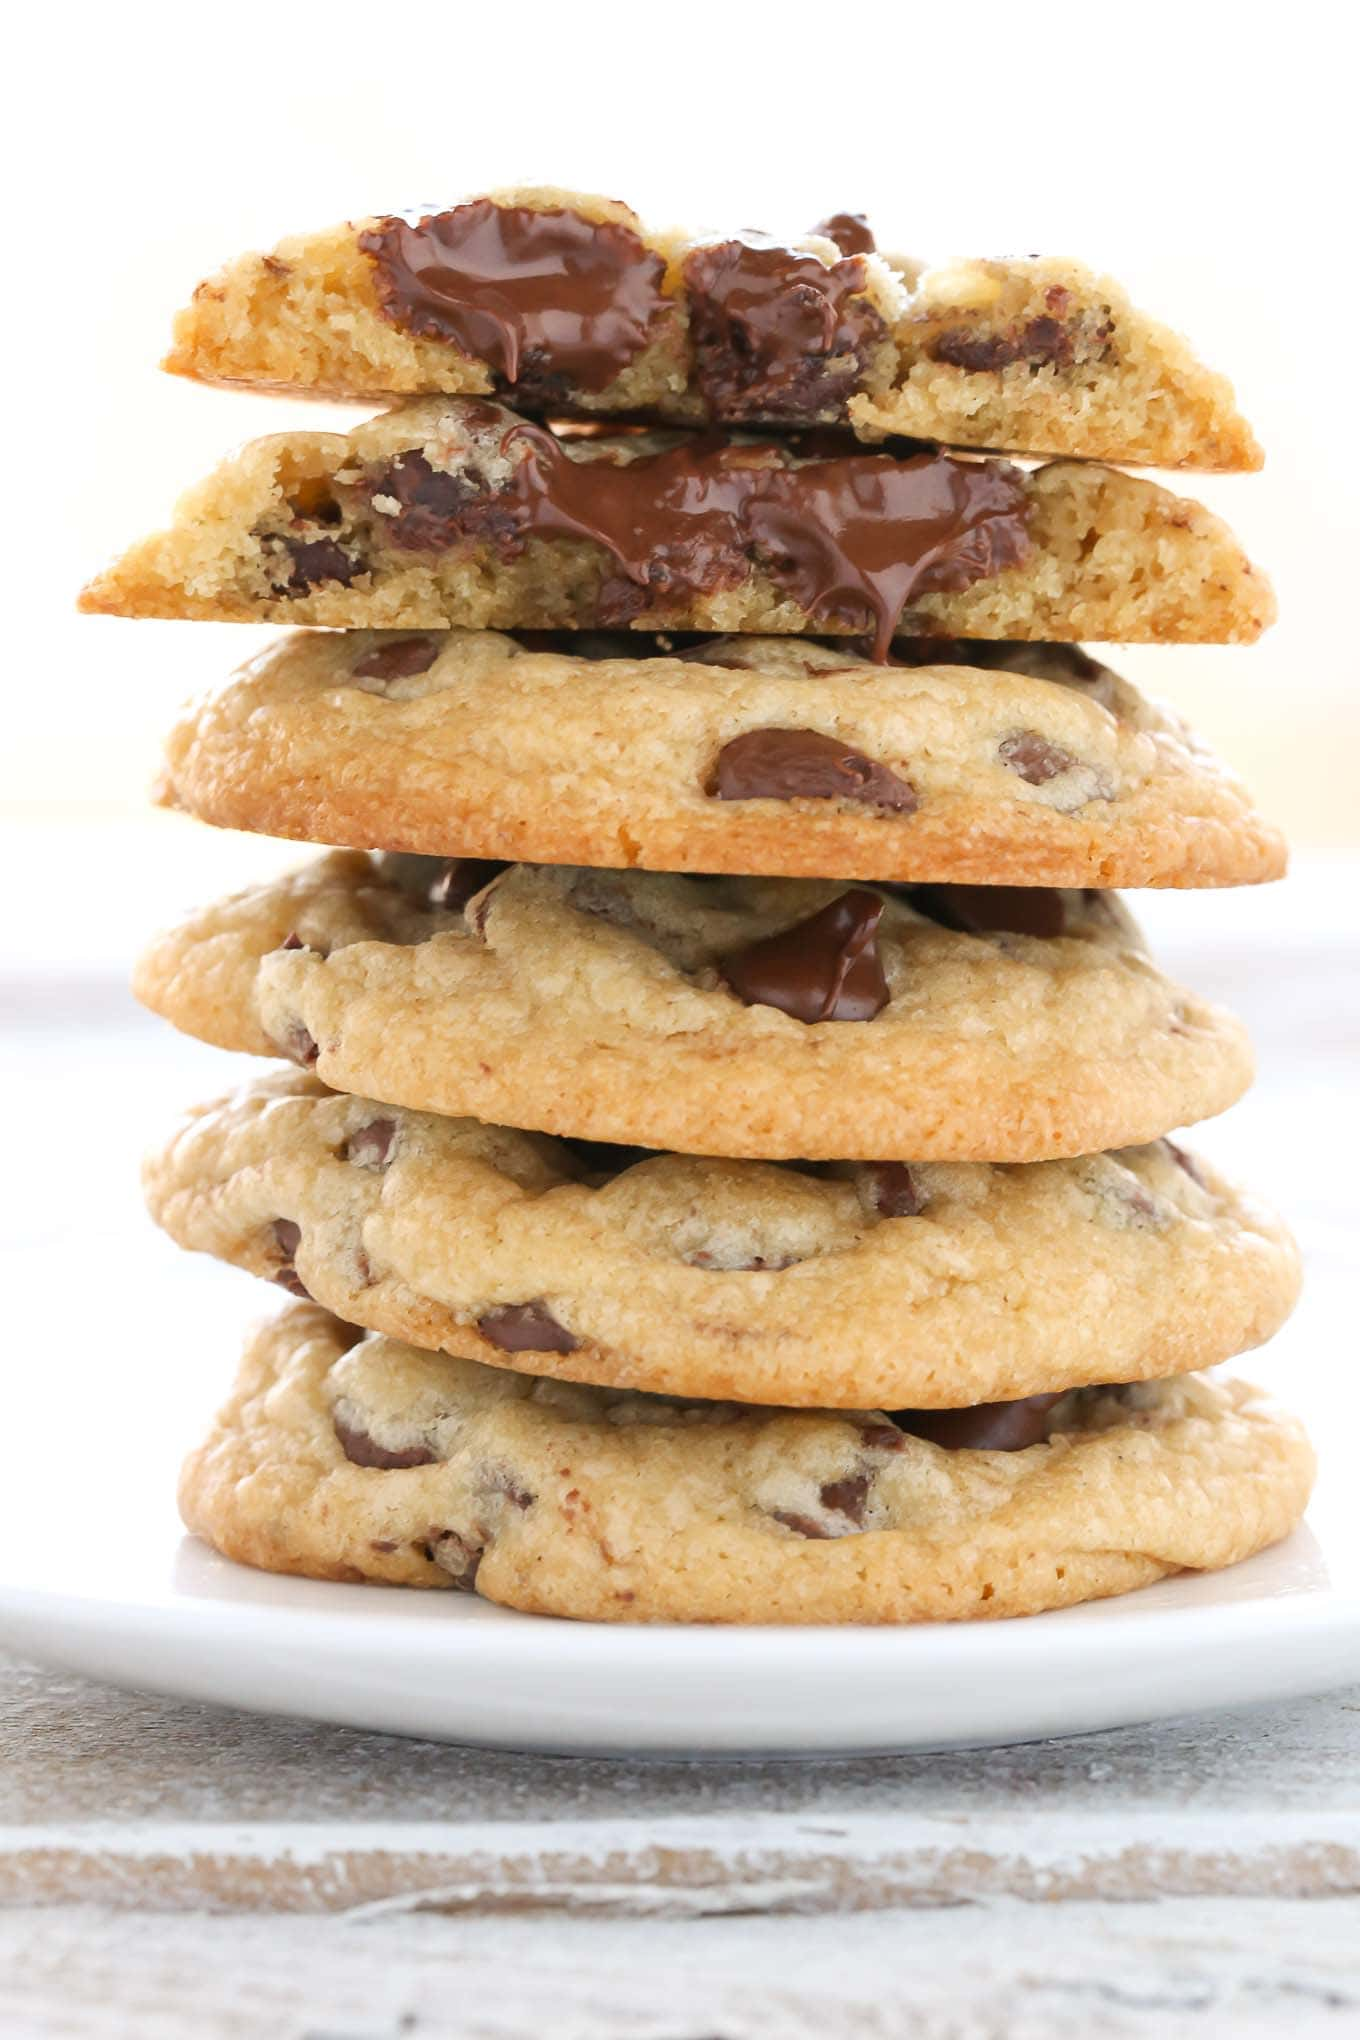 These chocolate chip cookies are extra soft, thick, and chewy. This is my FAVORITE recipe for chocolate chips cookies and they always turn out perfect every time!